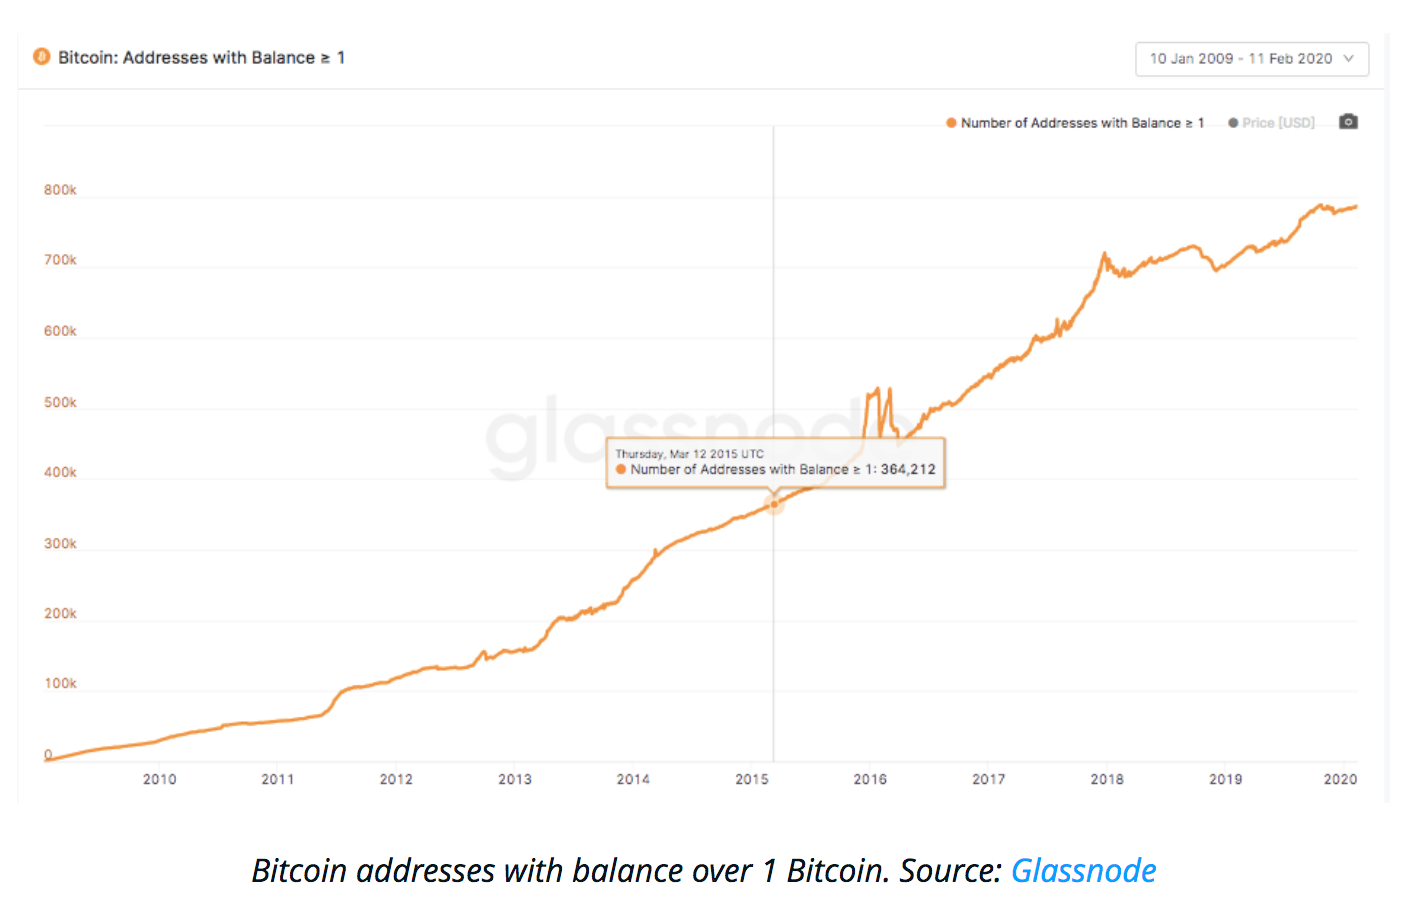 Amid Market Downturn, Number of People Owning 1 BTC Hits New Record